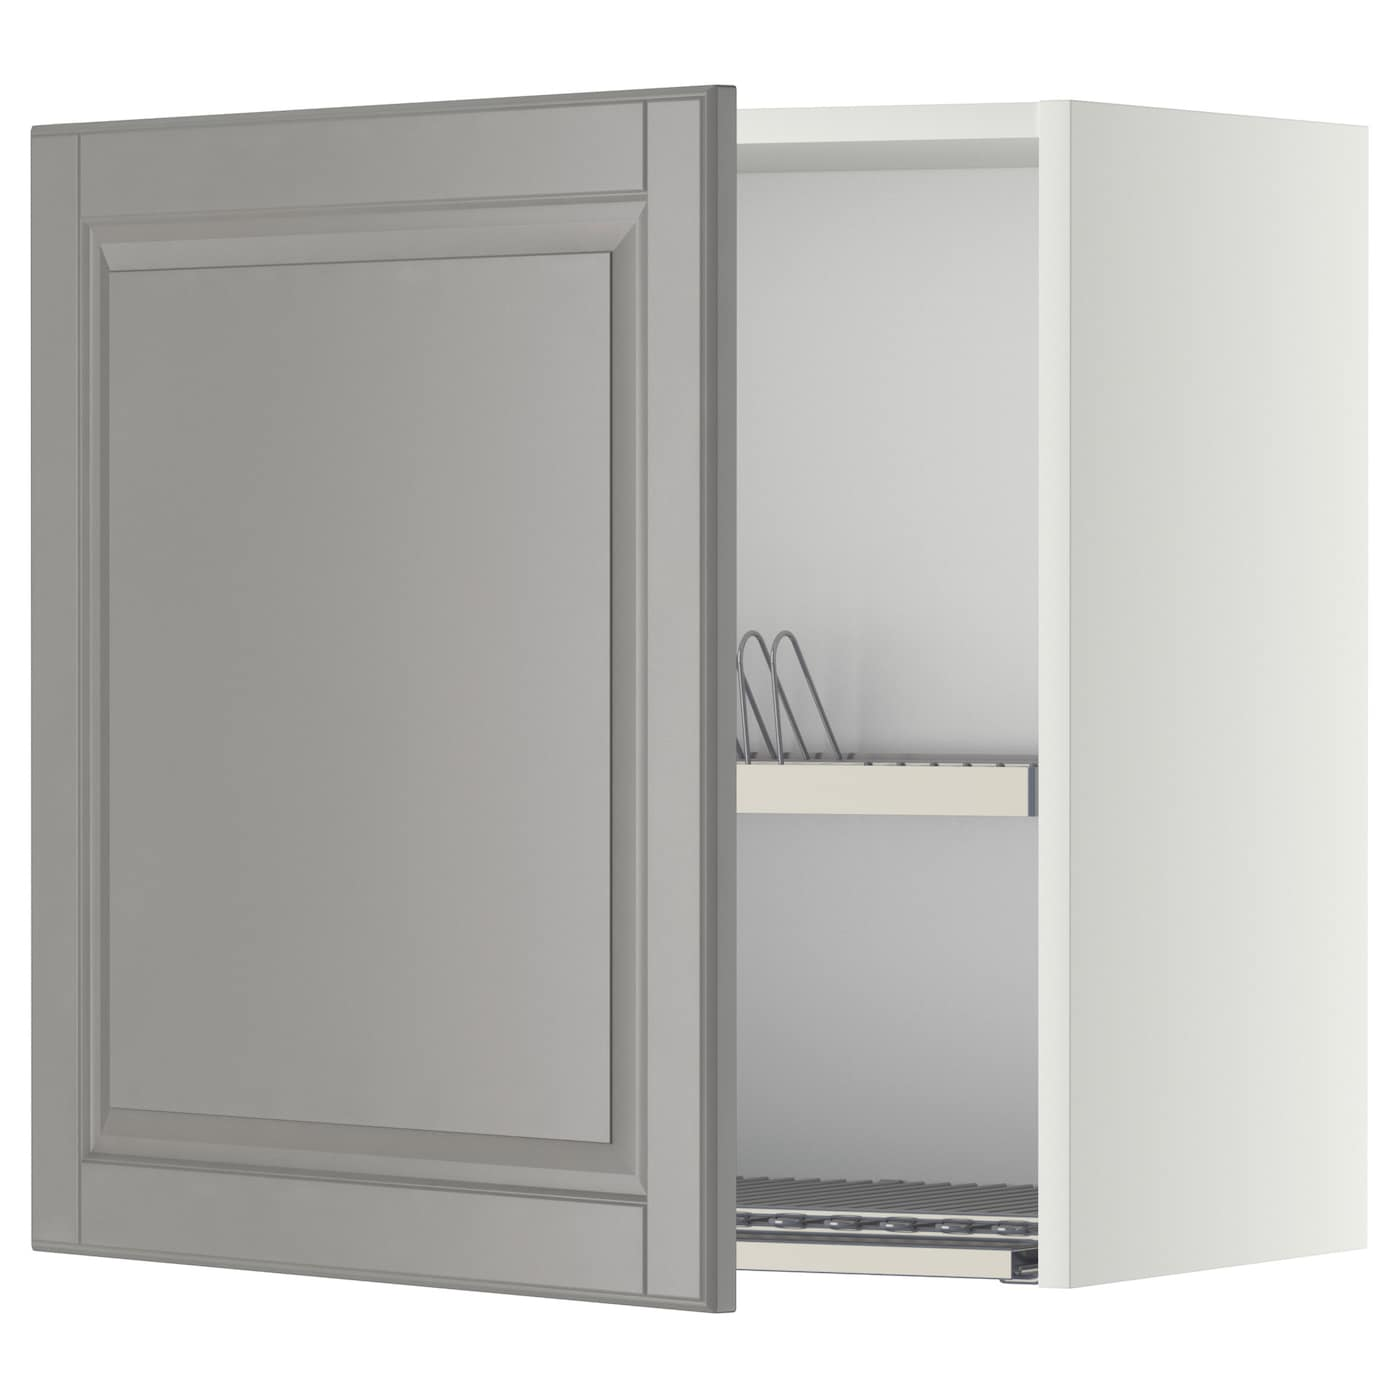 Wall Cabinet With Dish Drainer Metod White Bodbyn Grey